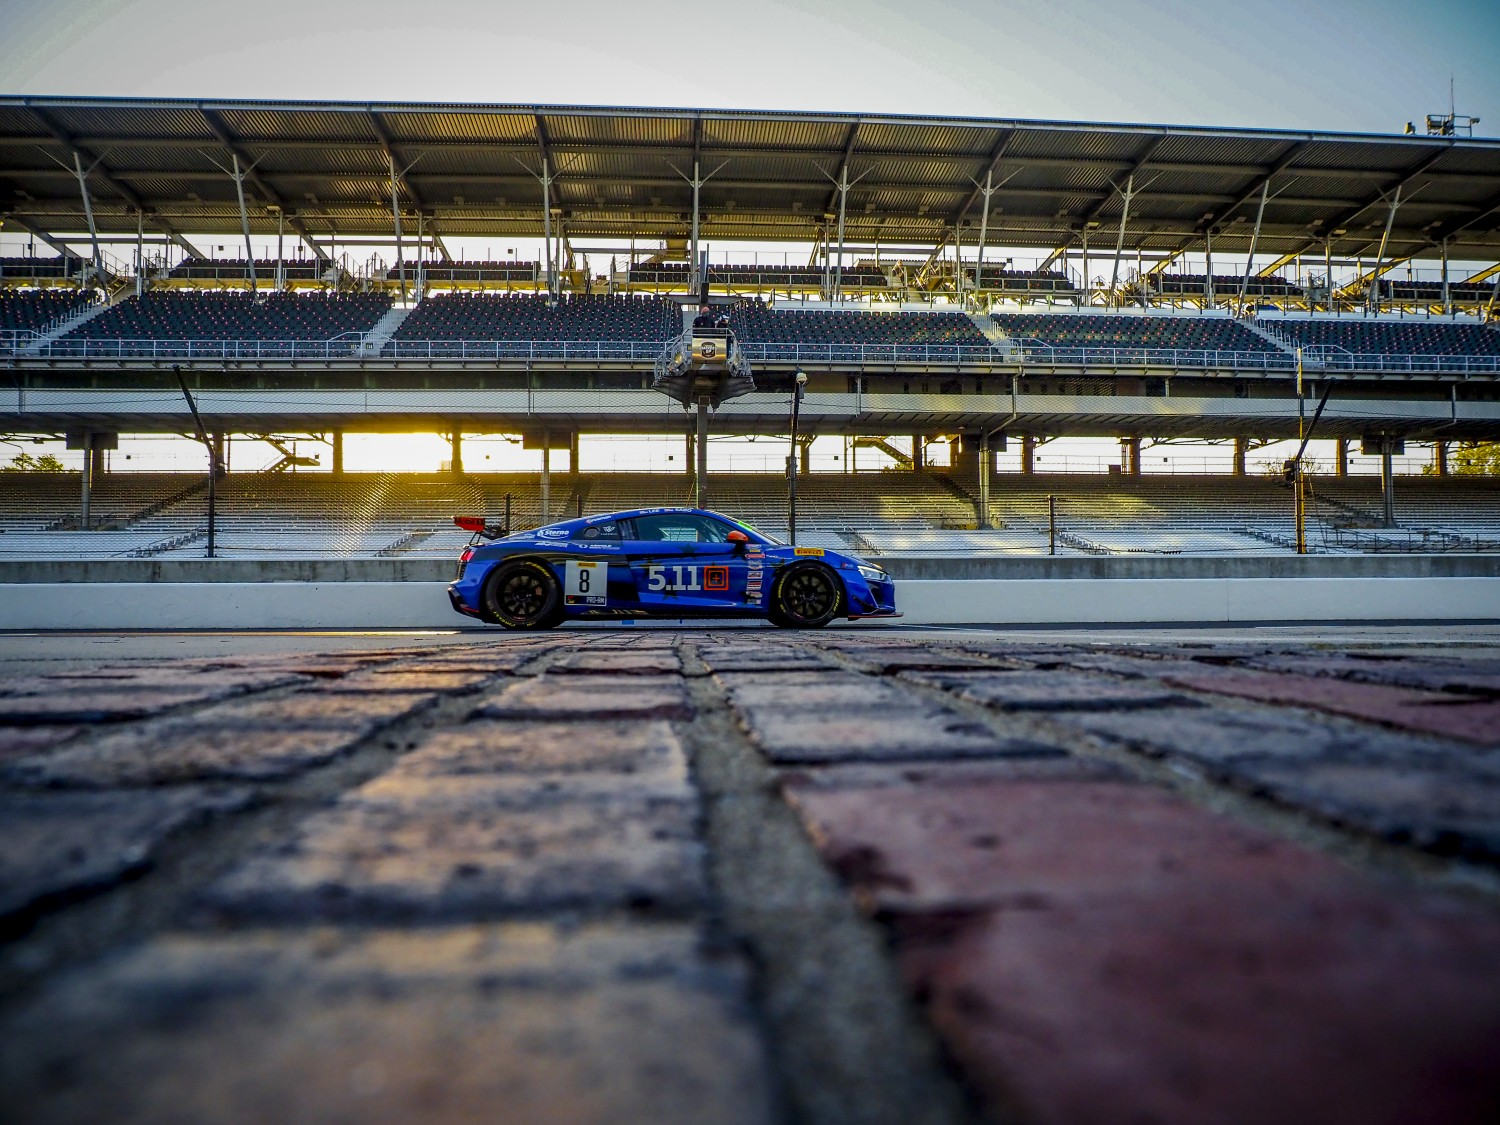 #8 Audi R8 LMS GT4 of Elias Sabo and Andy Lee, GMG Racing, GT4 SprintX Pro- Am, SRO, Indianapolis Motor Speedway, Indianapolis, IN, September 2020.  | Brian Cleary/SRO